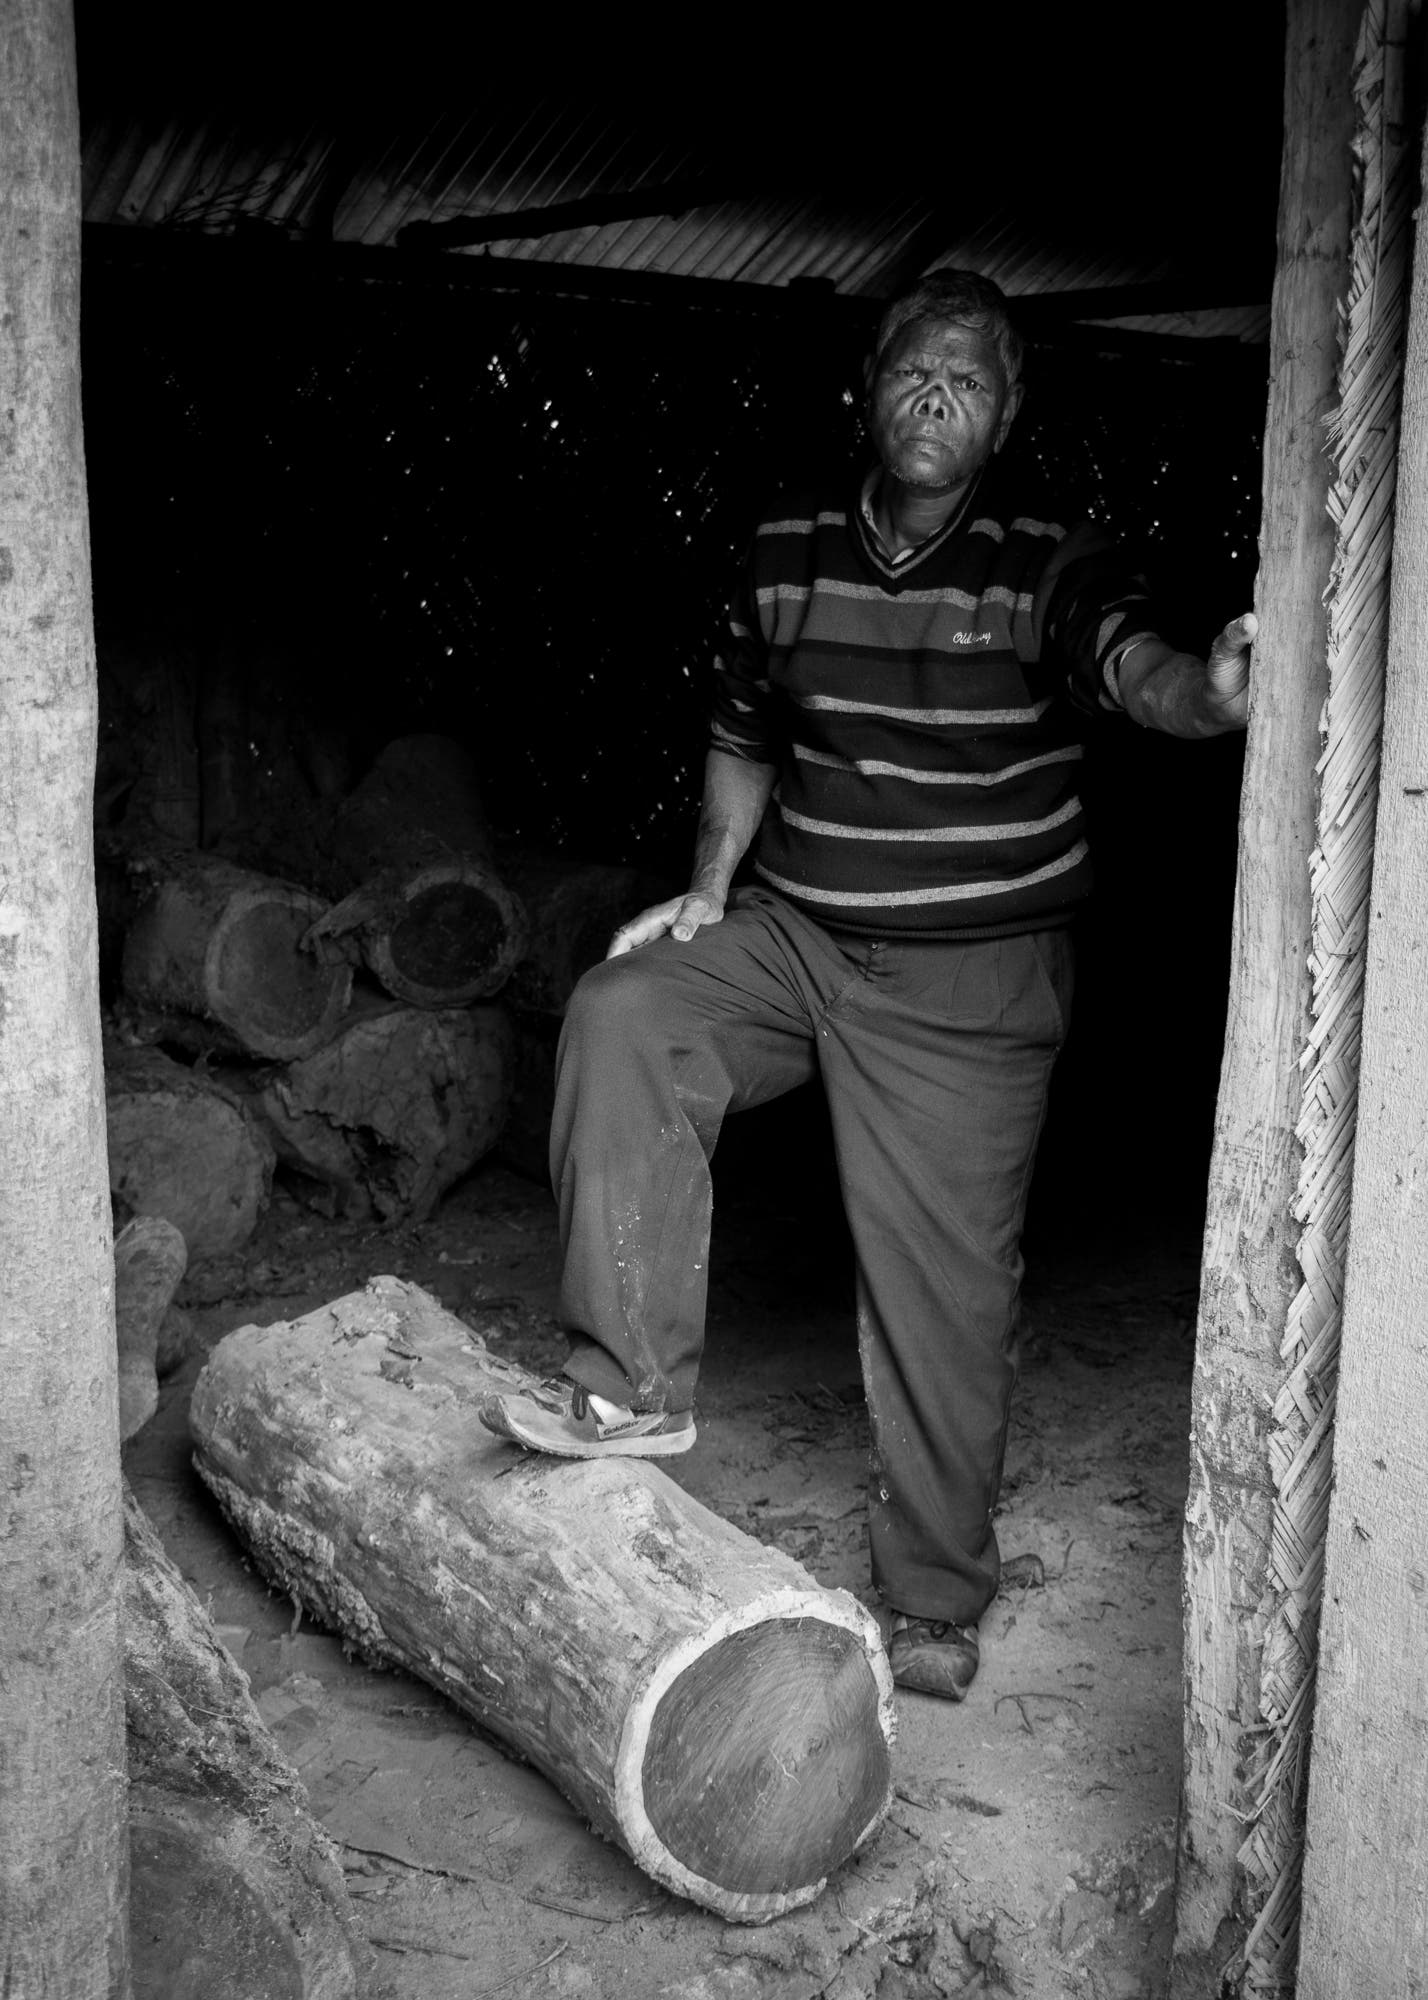 Prakash is a 49 year old man who was diagnosed with leprosy in 1996. He is unable to return to his village due to social stigma, and now works full time at the hospital as part of the rehabilitation programme, living alone in a flat nearby.